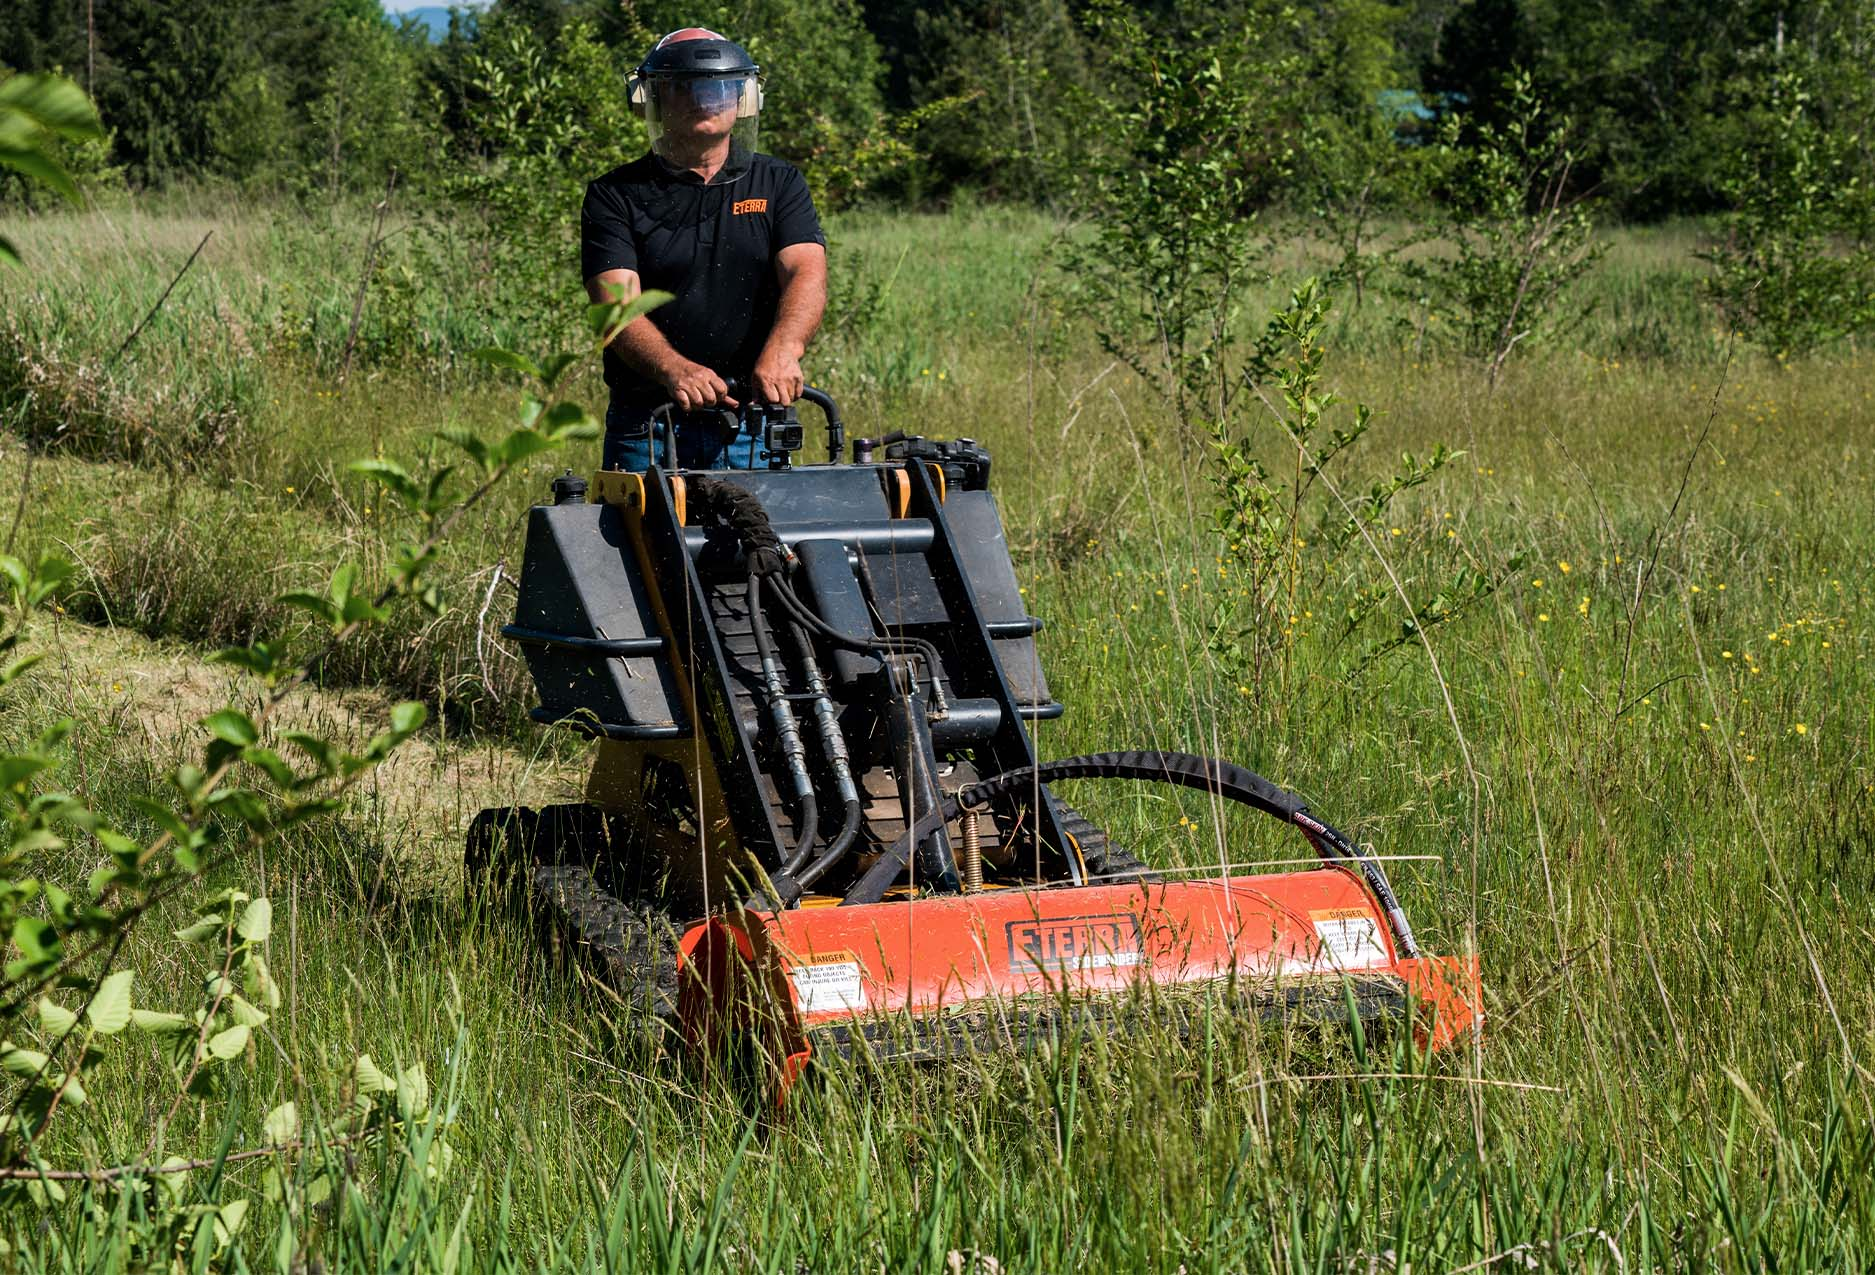 Eterra Sidewinder Skid Steer flail mower on mini field mowing mowing